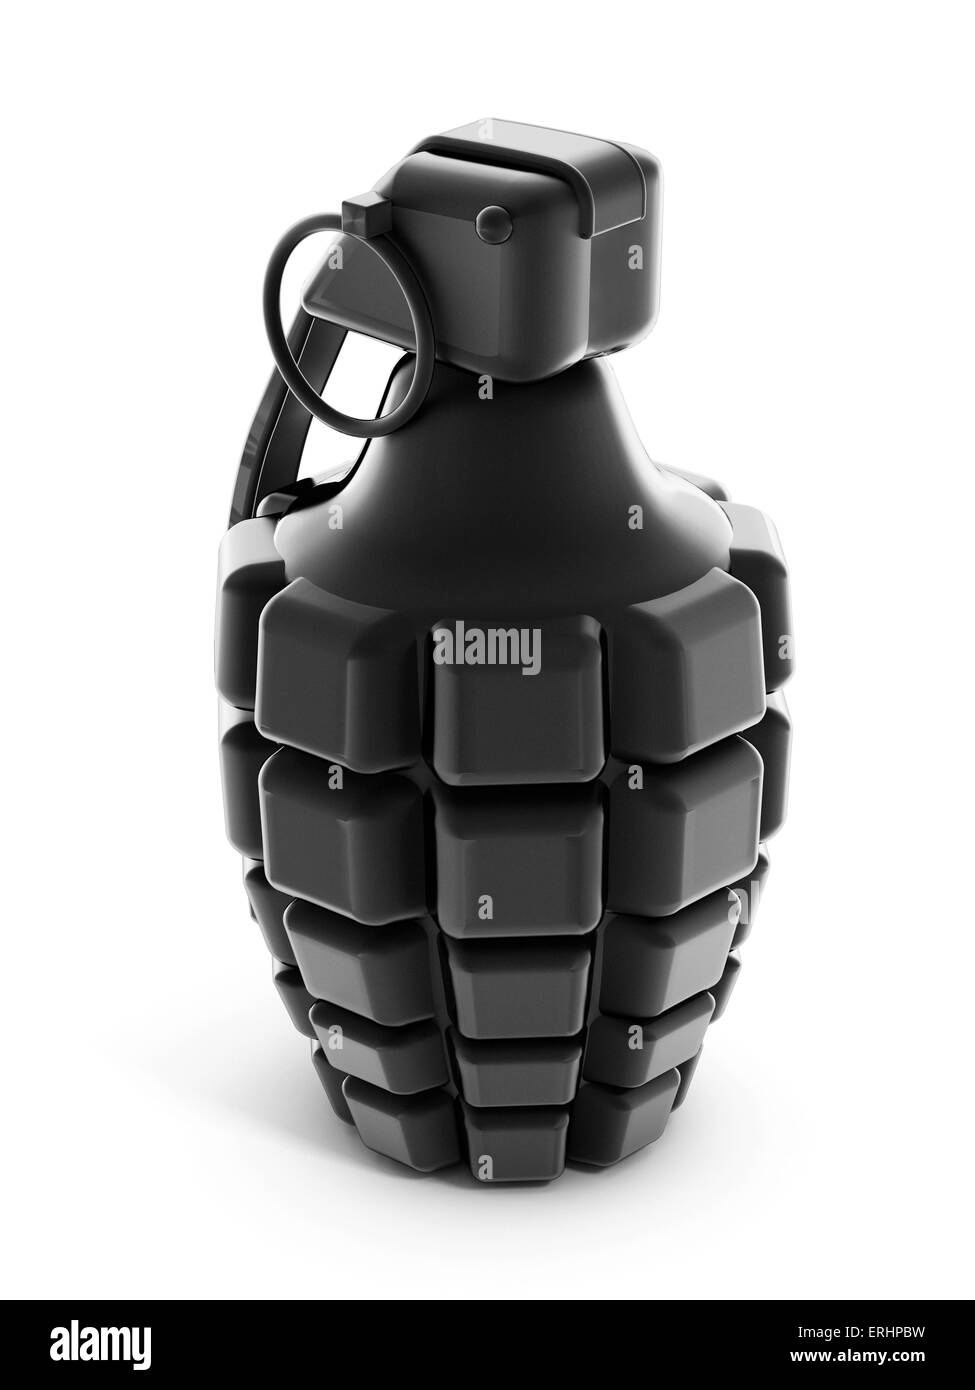 Hand grenade isolated on white - Stock Image